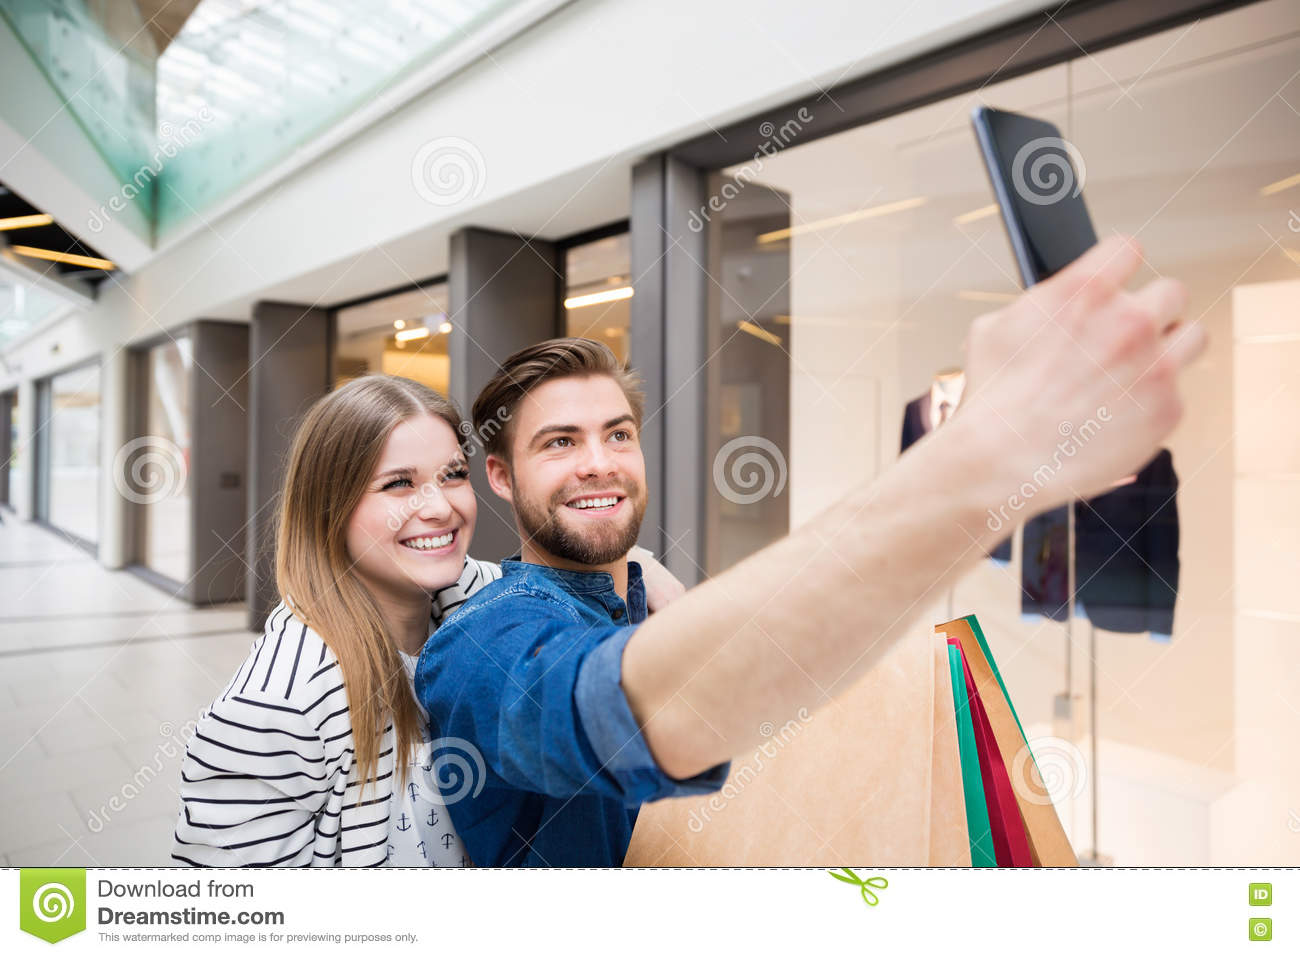 Let s take a selfie from our shopping